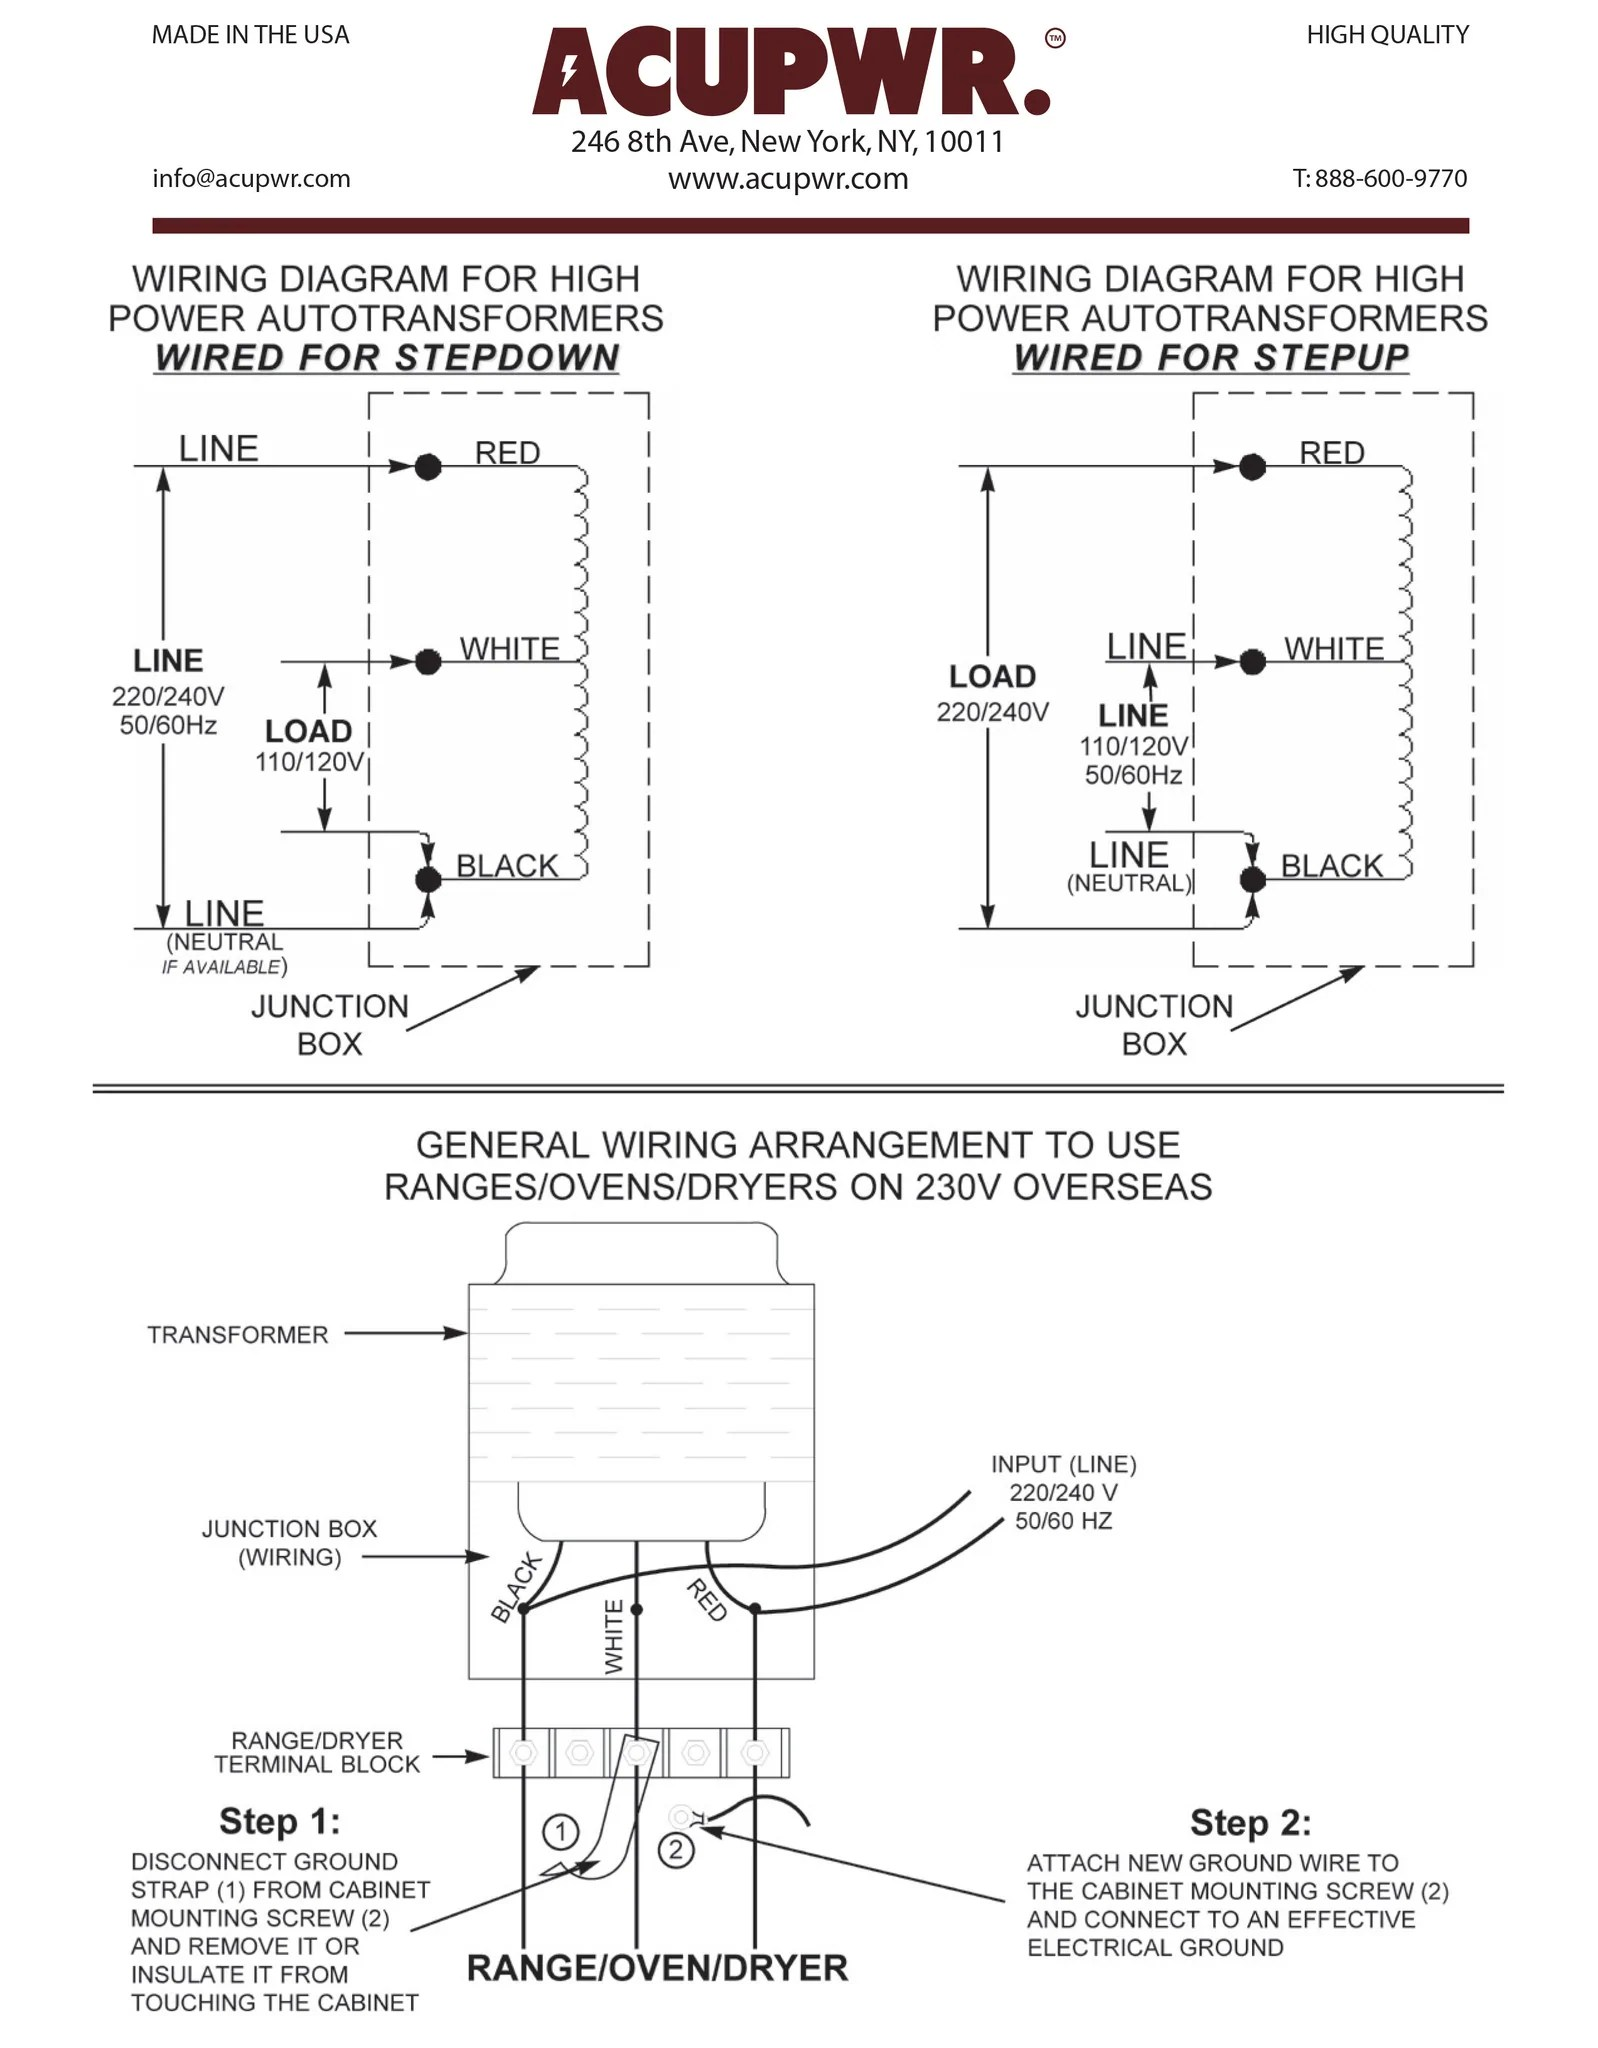 Sm50 Wiring Diagram Fuse Box D010 Led Driver Attractive Derbi Senda Ideas Best Images For Rh Oursweetbakeshop Info Generic Trigger Sm 50 Motorola Manual